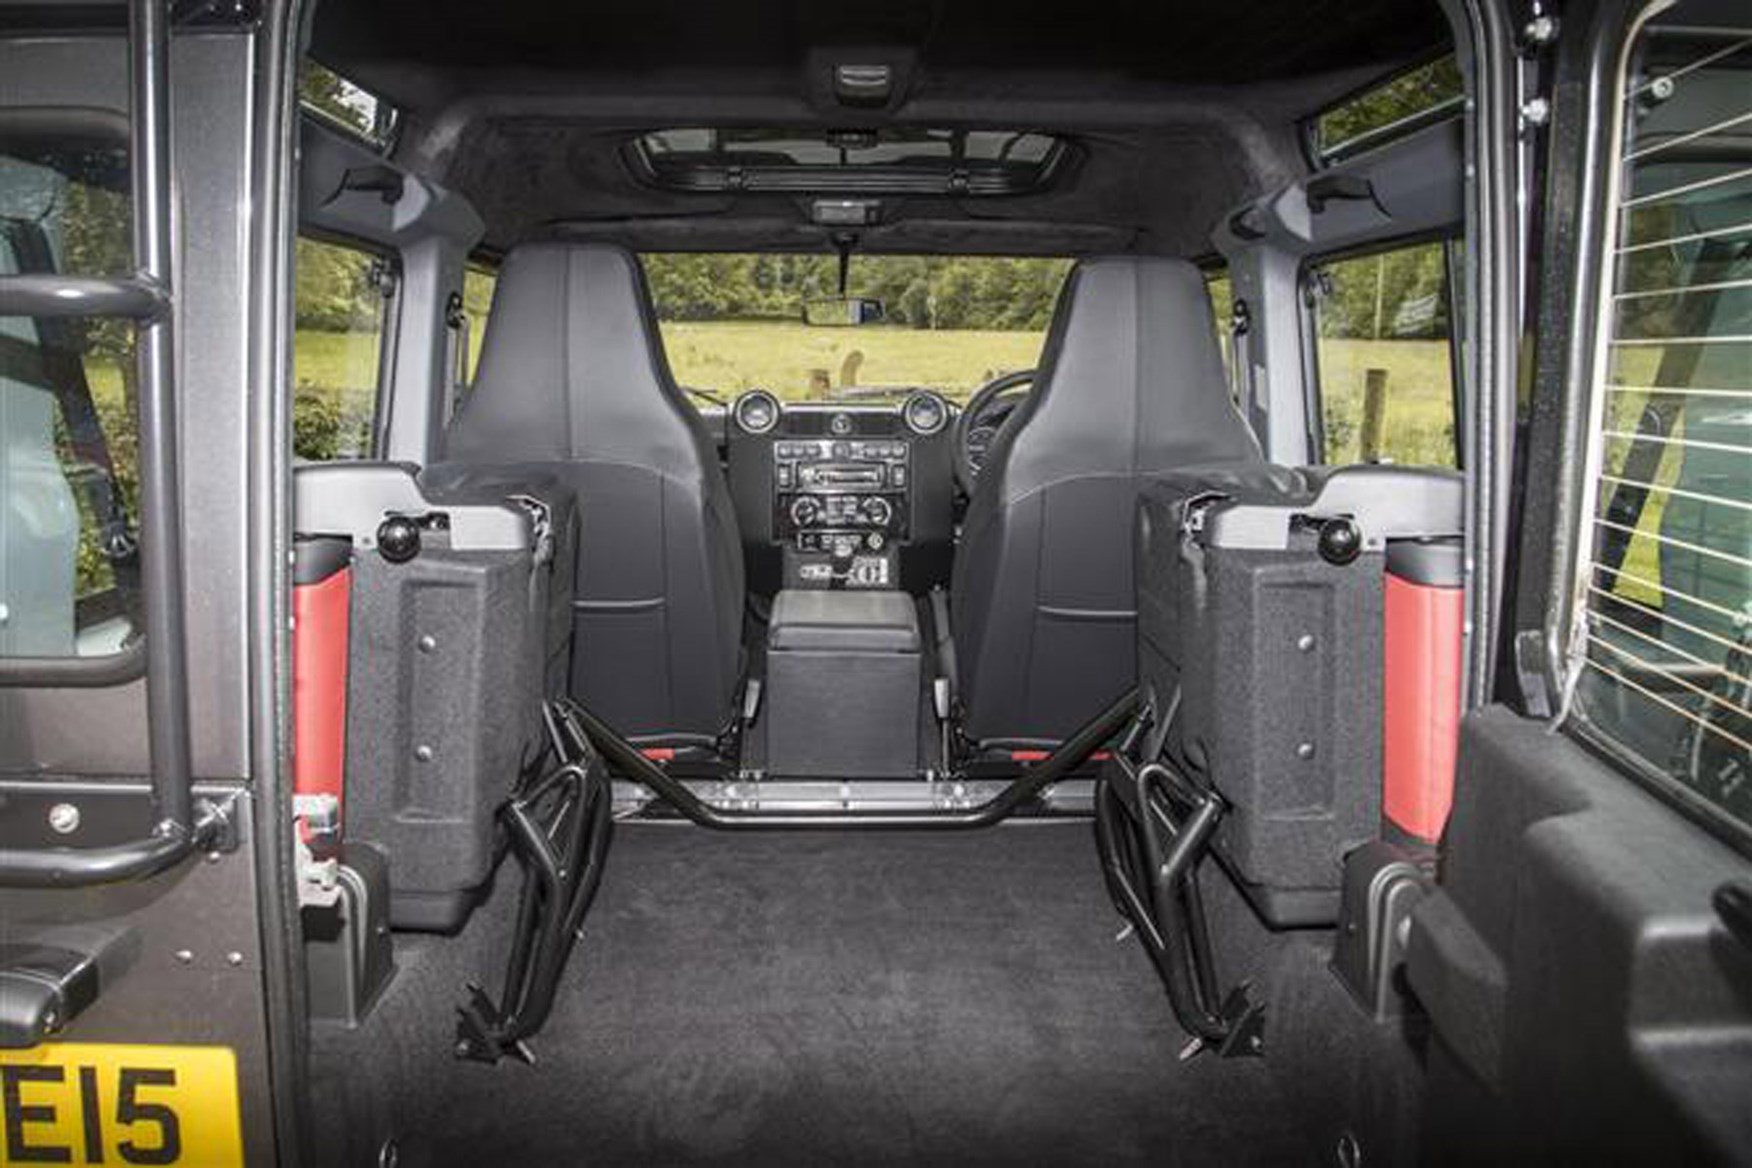 Land Rover Defender 2007-2016 review on Parkers Vans - load area dimensions